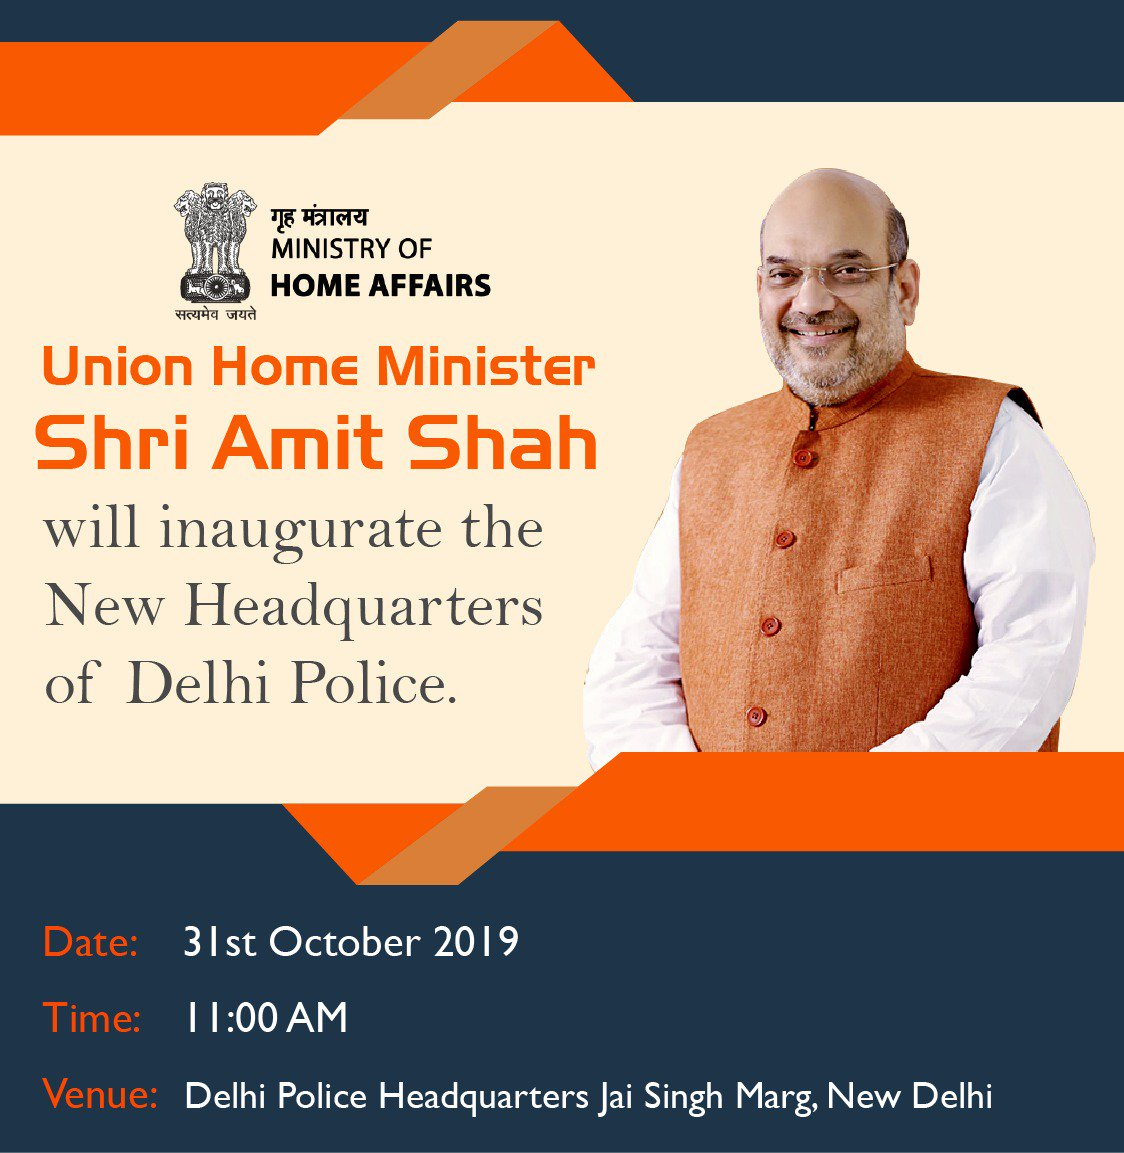 Union Home Minister Shri @AmitShah will inaugurate the @DelhiPolice's Headquarters at Jai Singh Road, New Delhi tomorrow, 31 Oct 2019 at 11am.